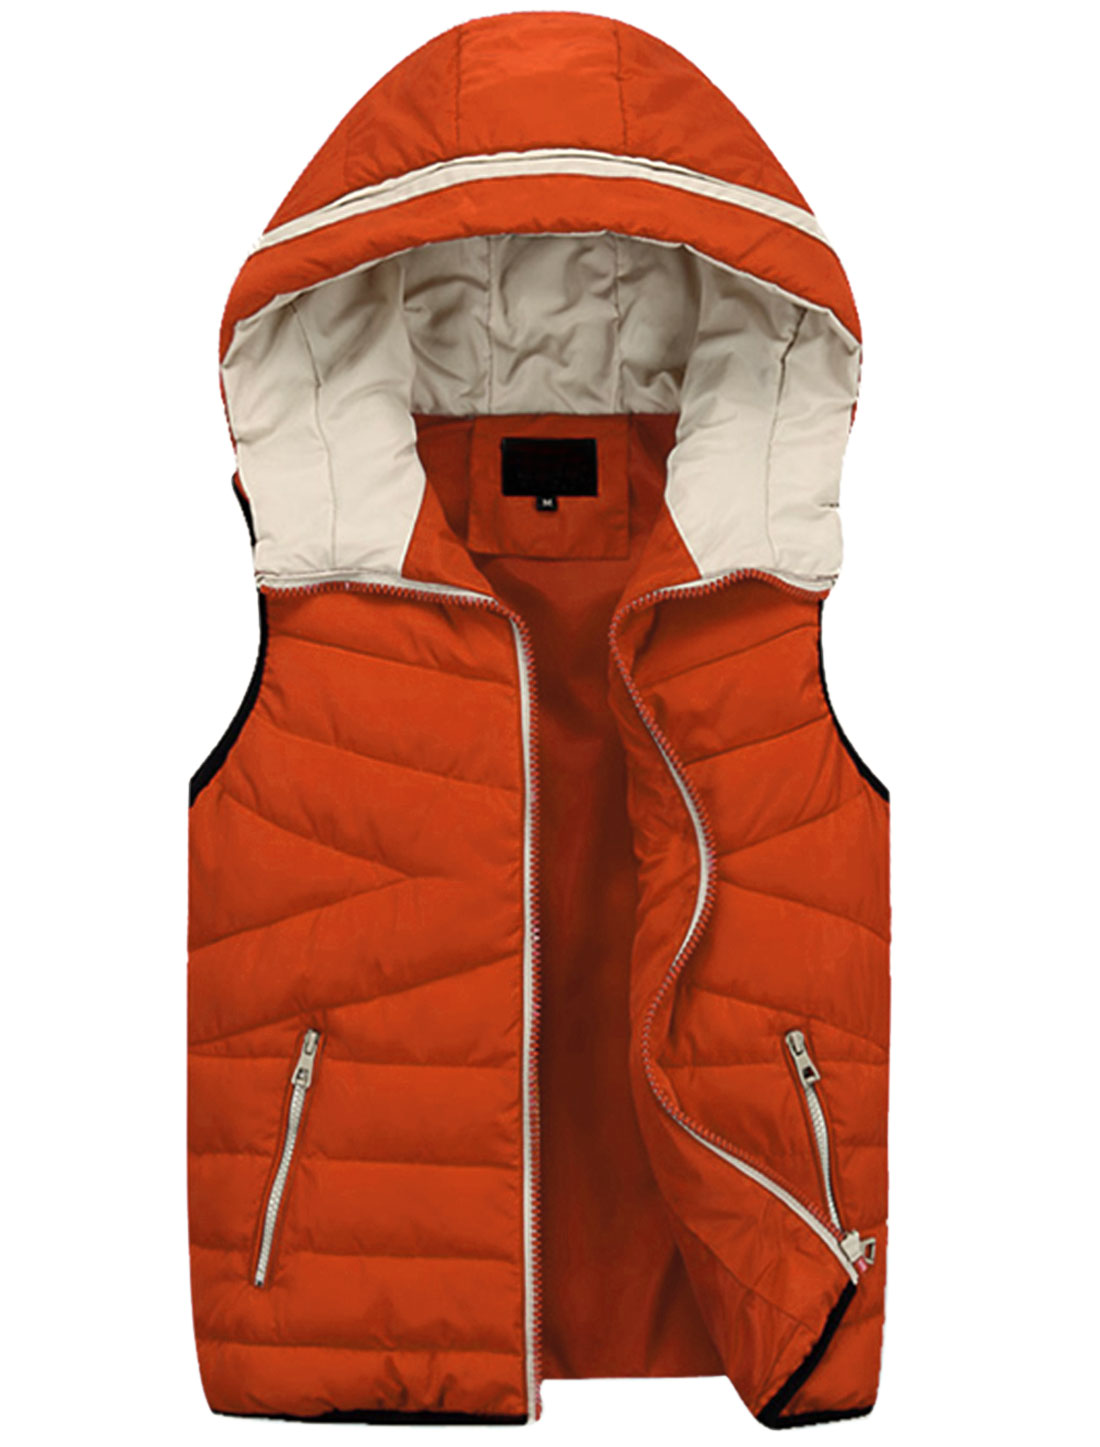 New Style Double Slant Pockets Front Leisure Padded Vest for Men Orange M